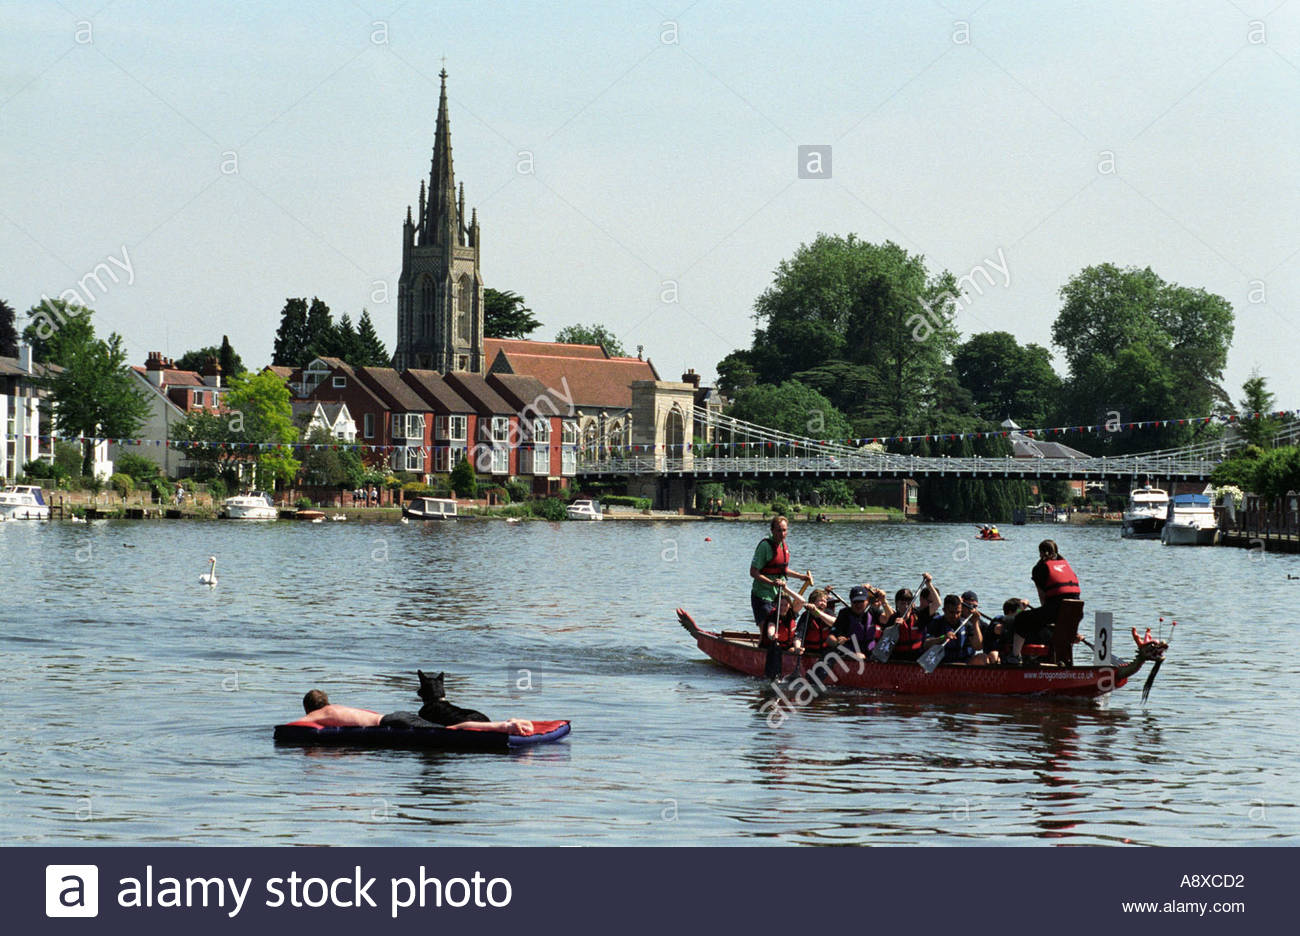 Dragon Boat racers and a lone floating sunbather at Marlow, on River Thames, UK - Stock Image